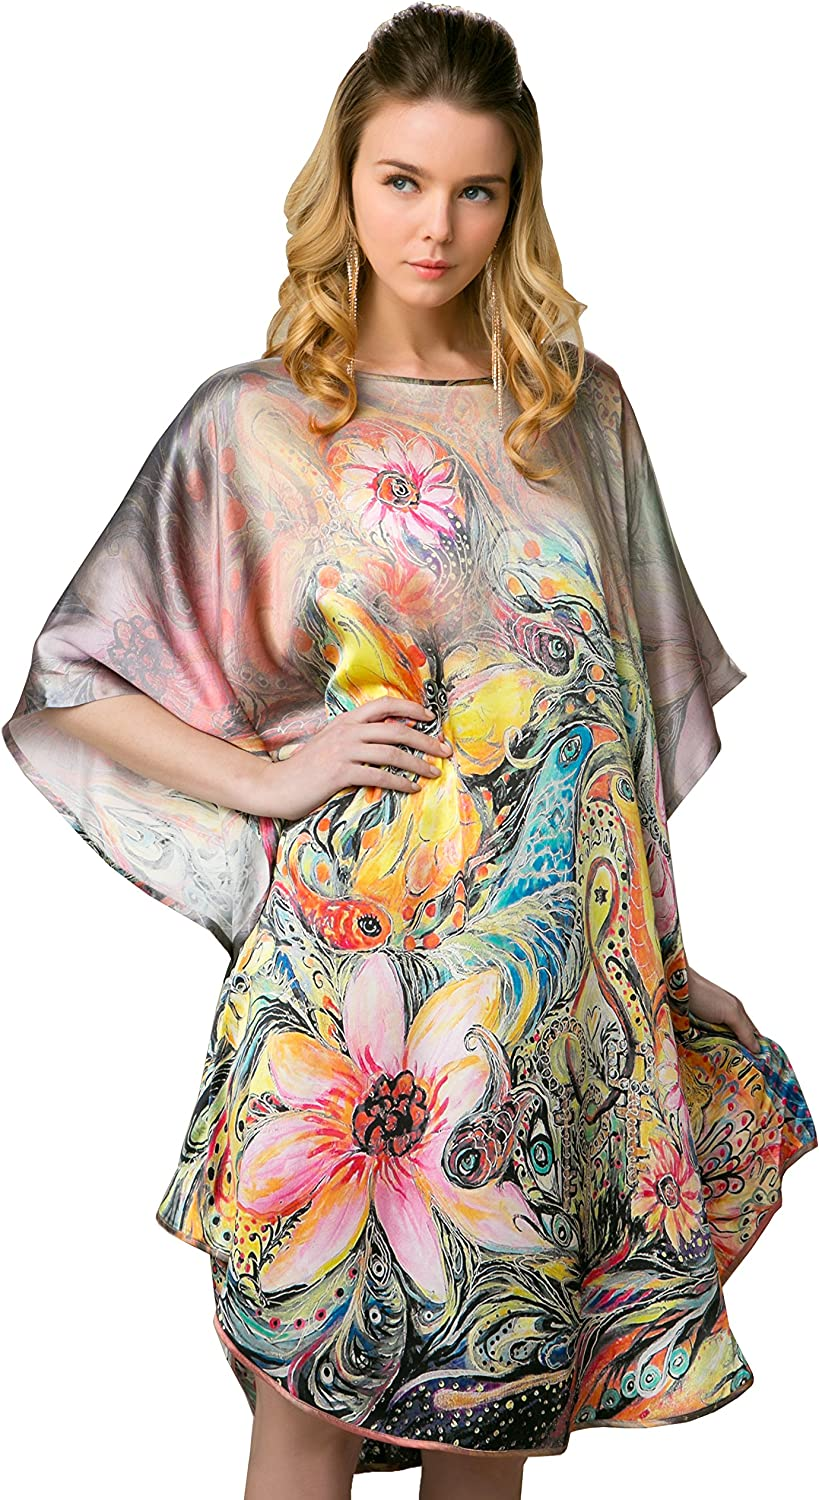 100% Pure Silk Nightgowns Batwing Sleeved Classic Sleepwear